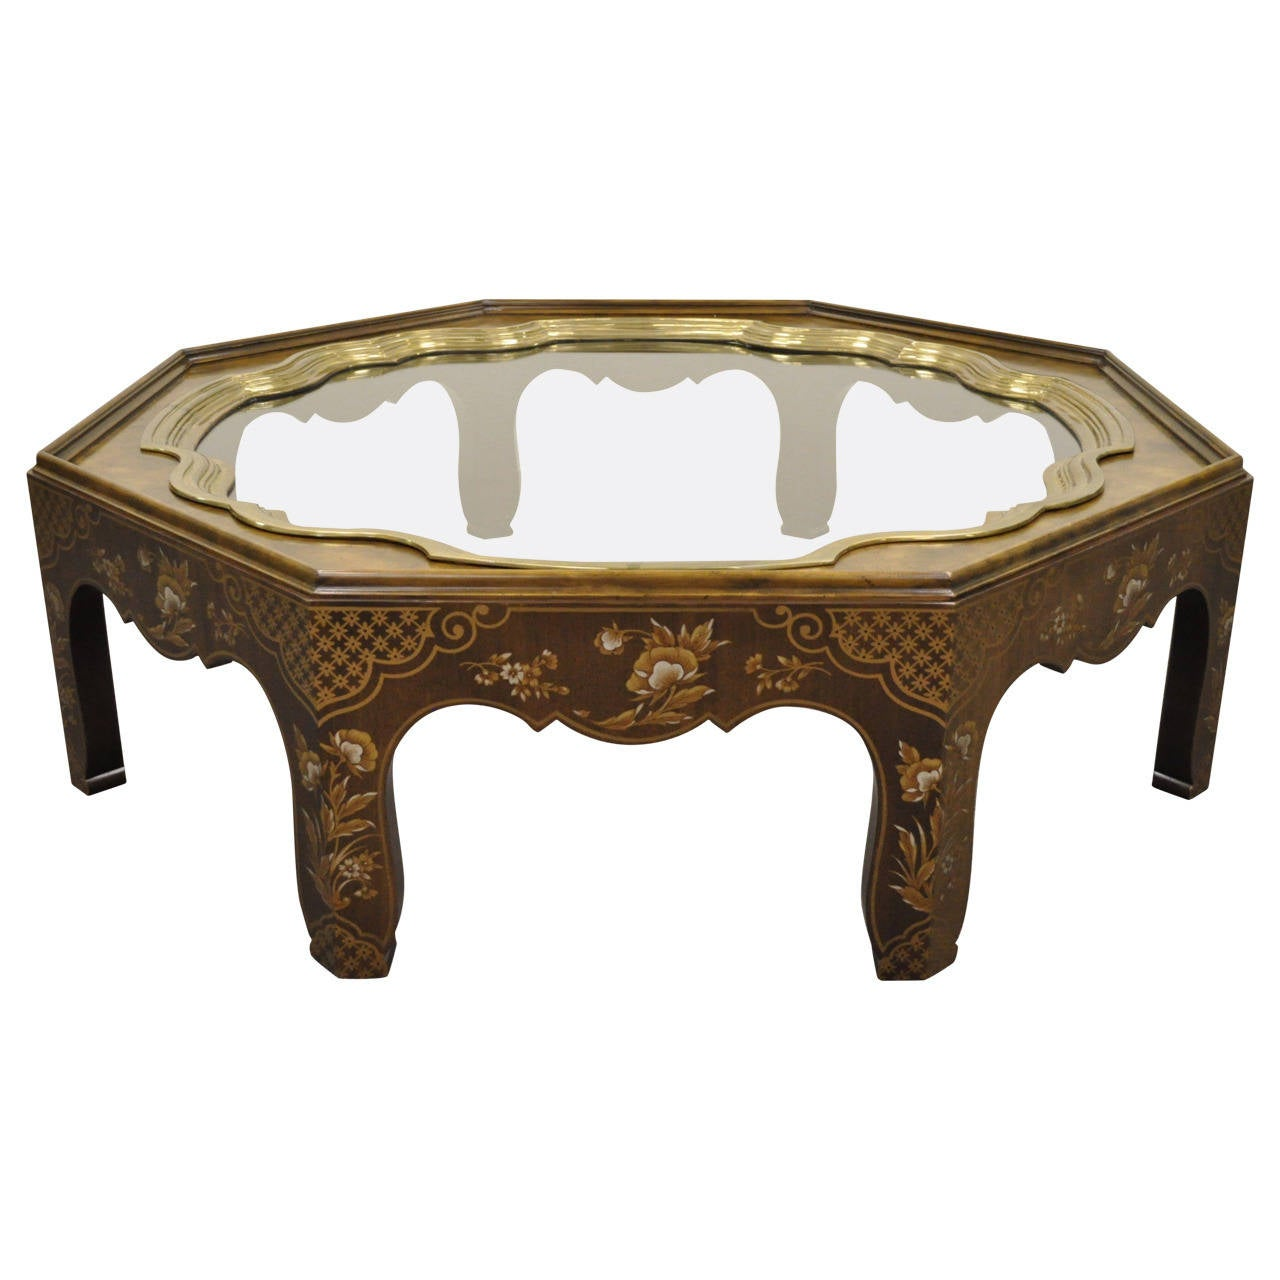 Octagonal Baker Furniture Co. Chinoiserie Painted Brass Tray Coffee Table